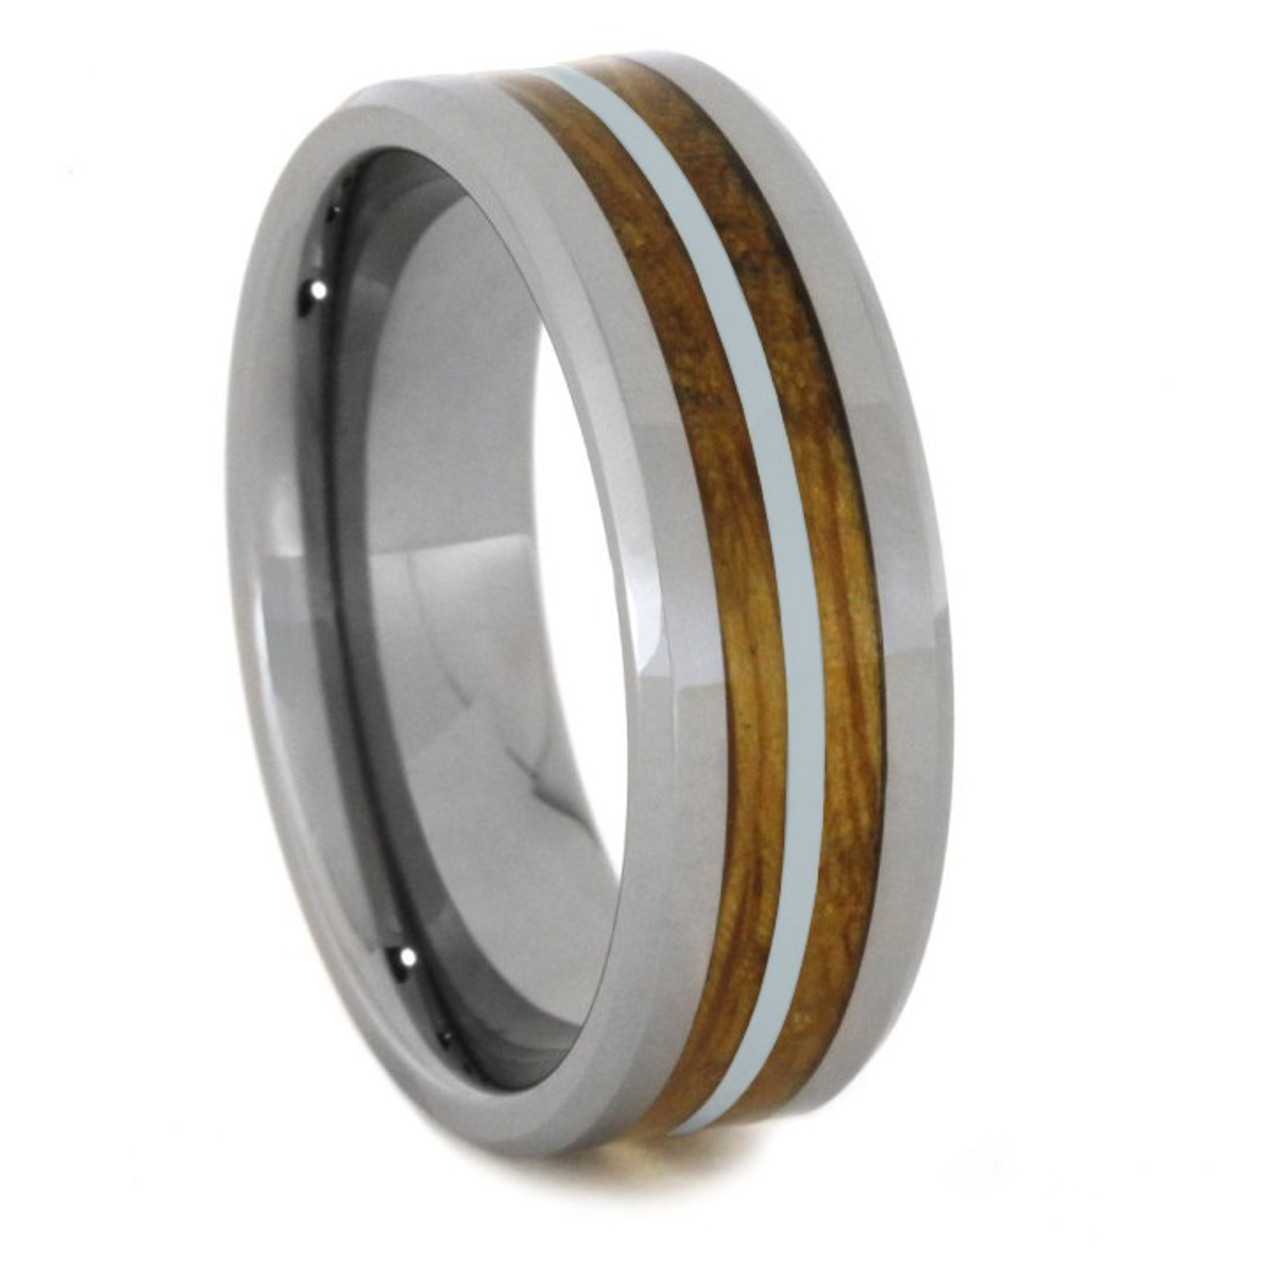 8 Mm Tungsten Silver Mens Wedding Bands Whiskey Barrel Inlay